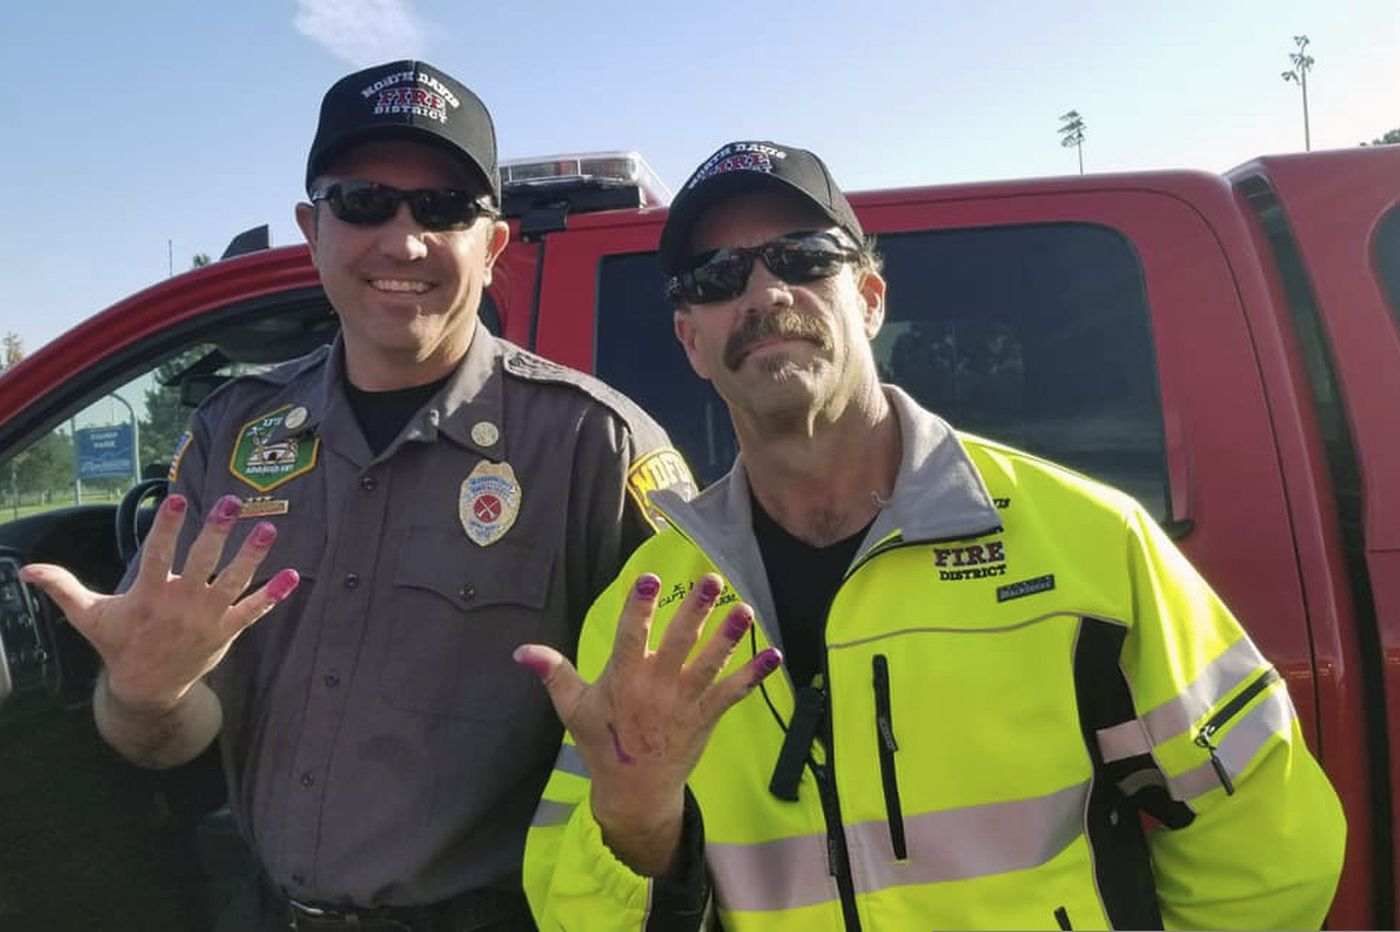 Firefighters come to the rescue of a screaming toddler — with nail polish